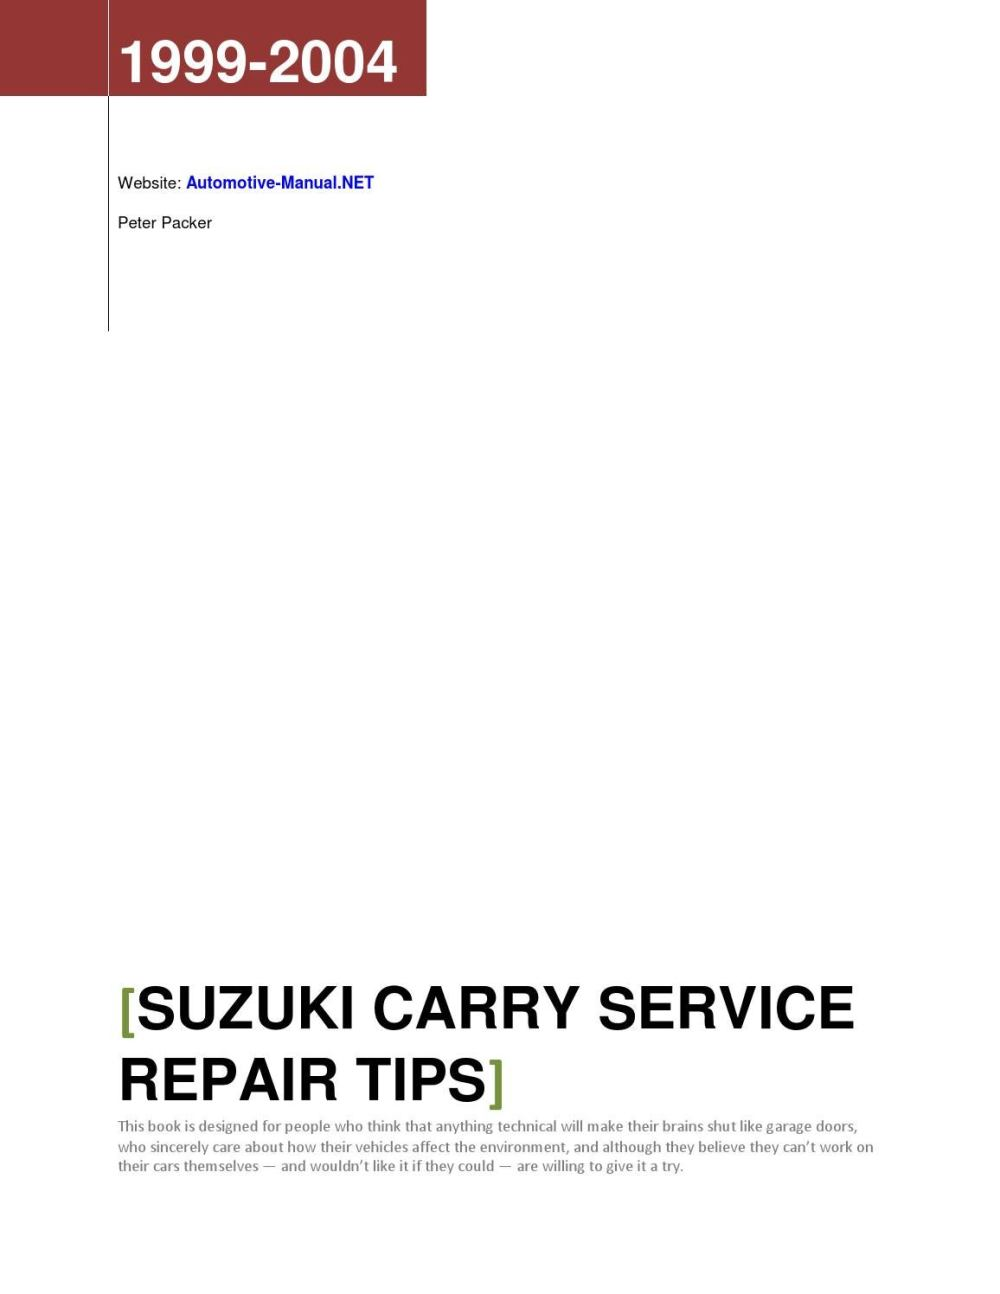 medium resolution of suzuki carry 1999 2004 service repair tips by armando oliver issuu